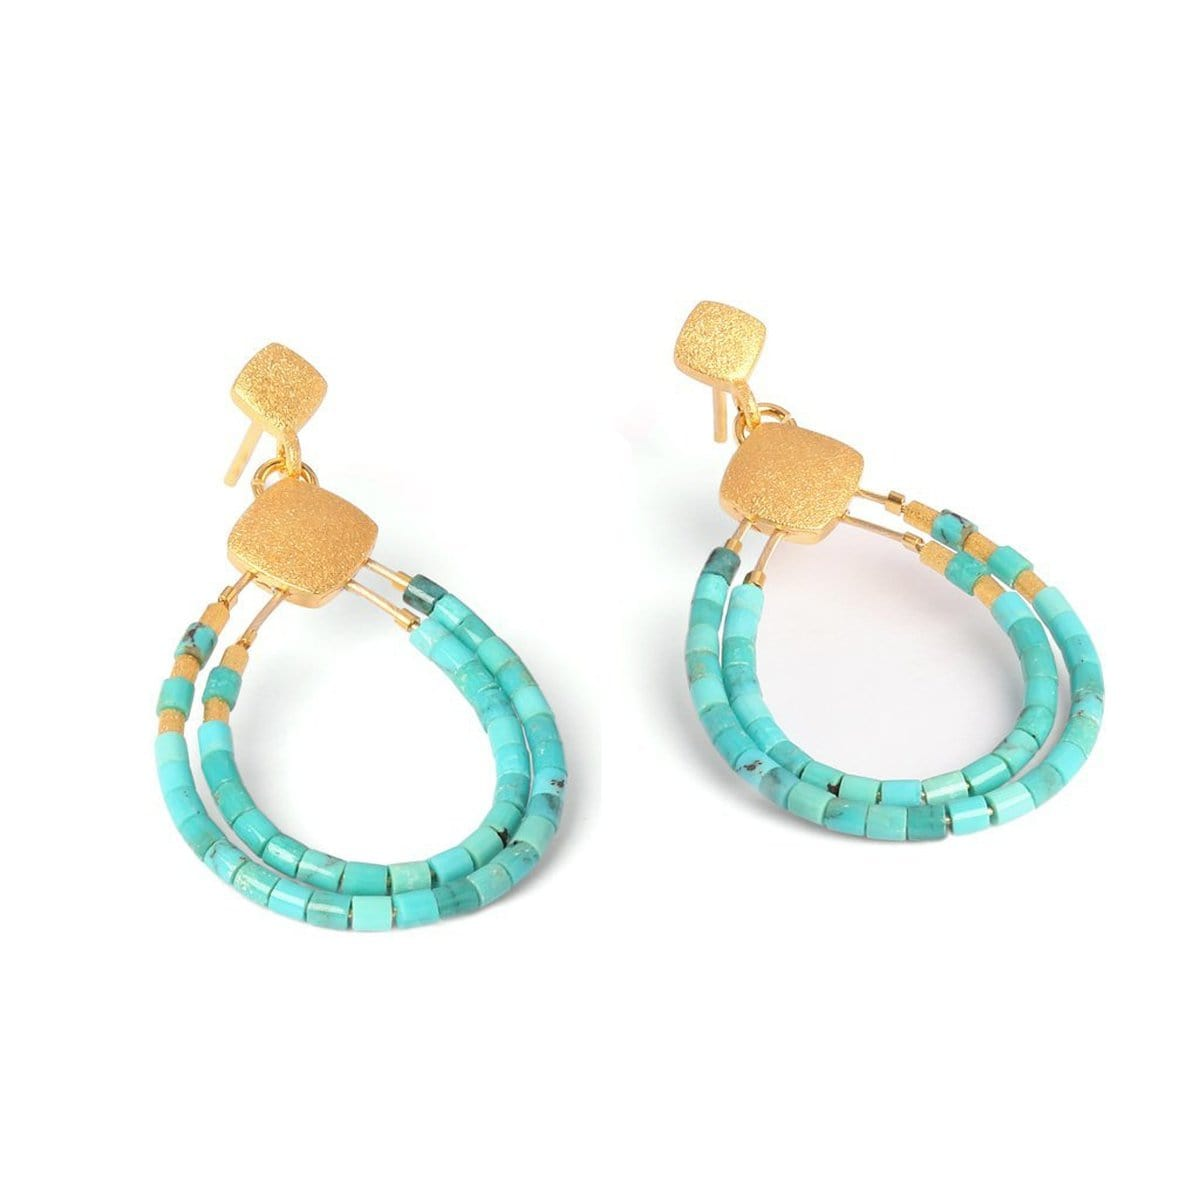 Clini Turquoise Earrings - 15576256